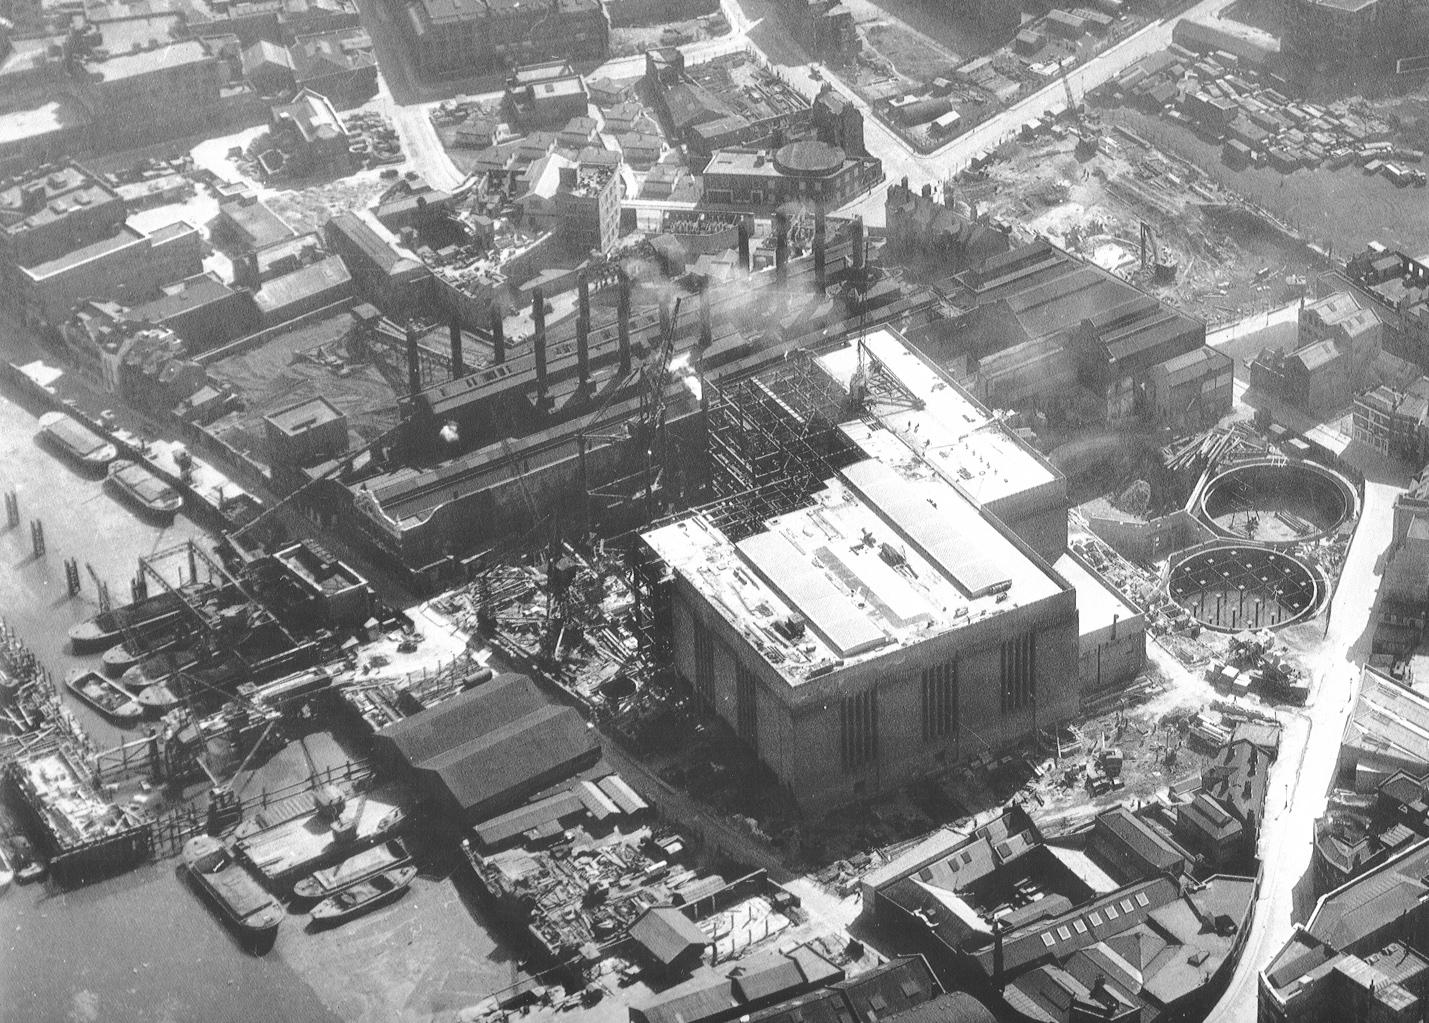 Bankside power station under construction, March 1952 (© Simmons Aerofilms)